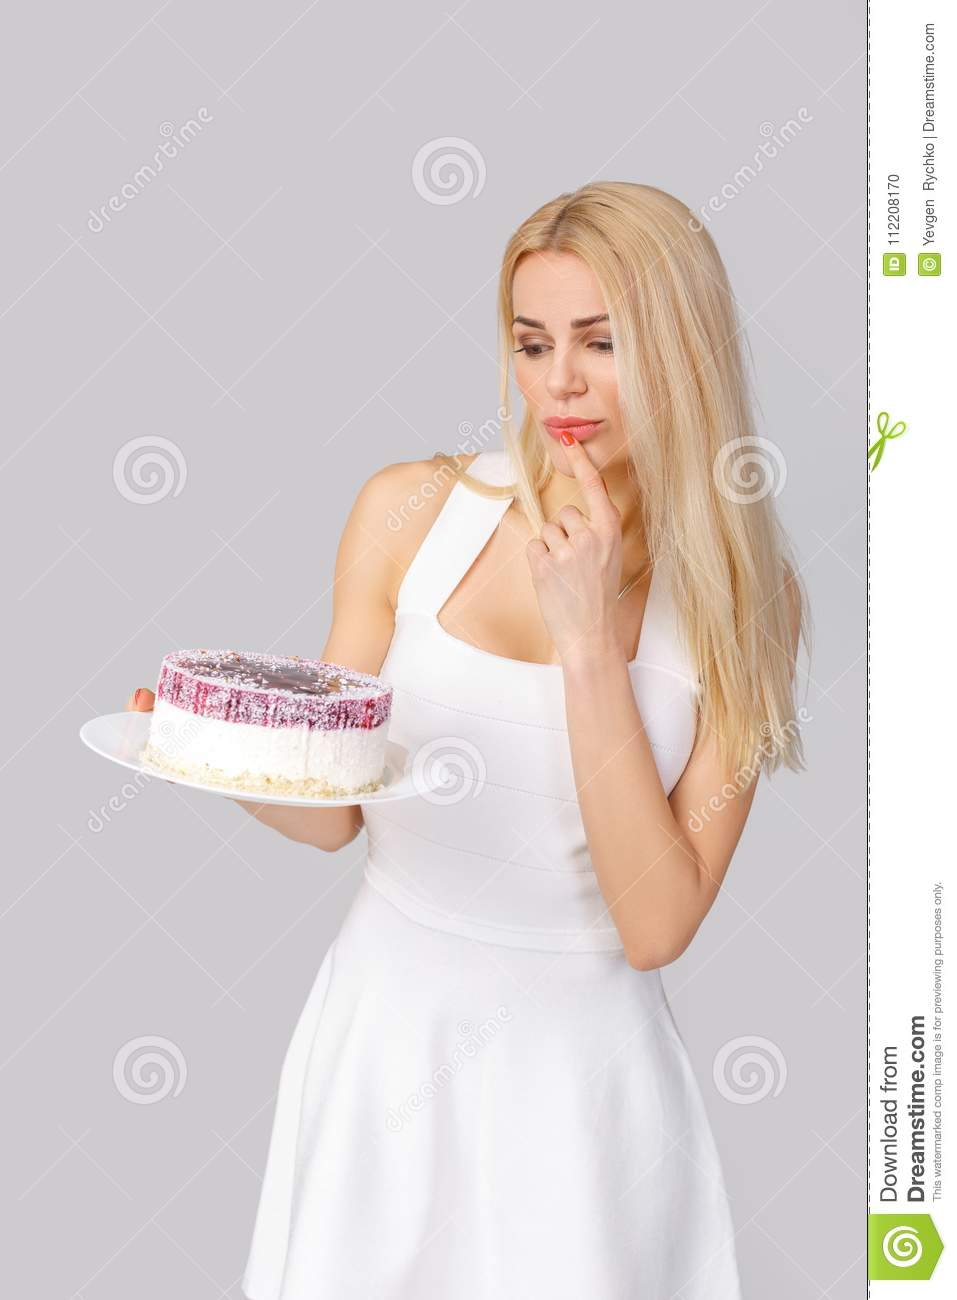 Woman in white dress holding cake